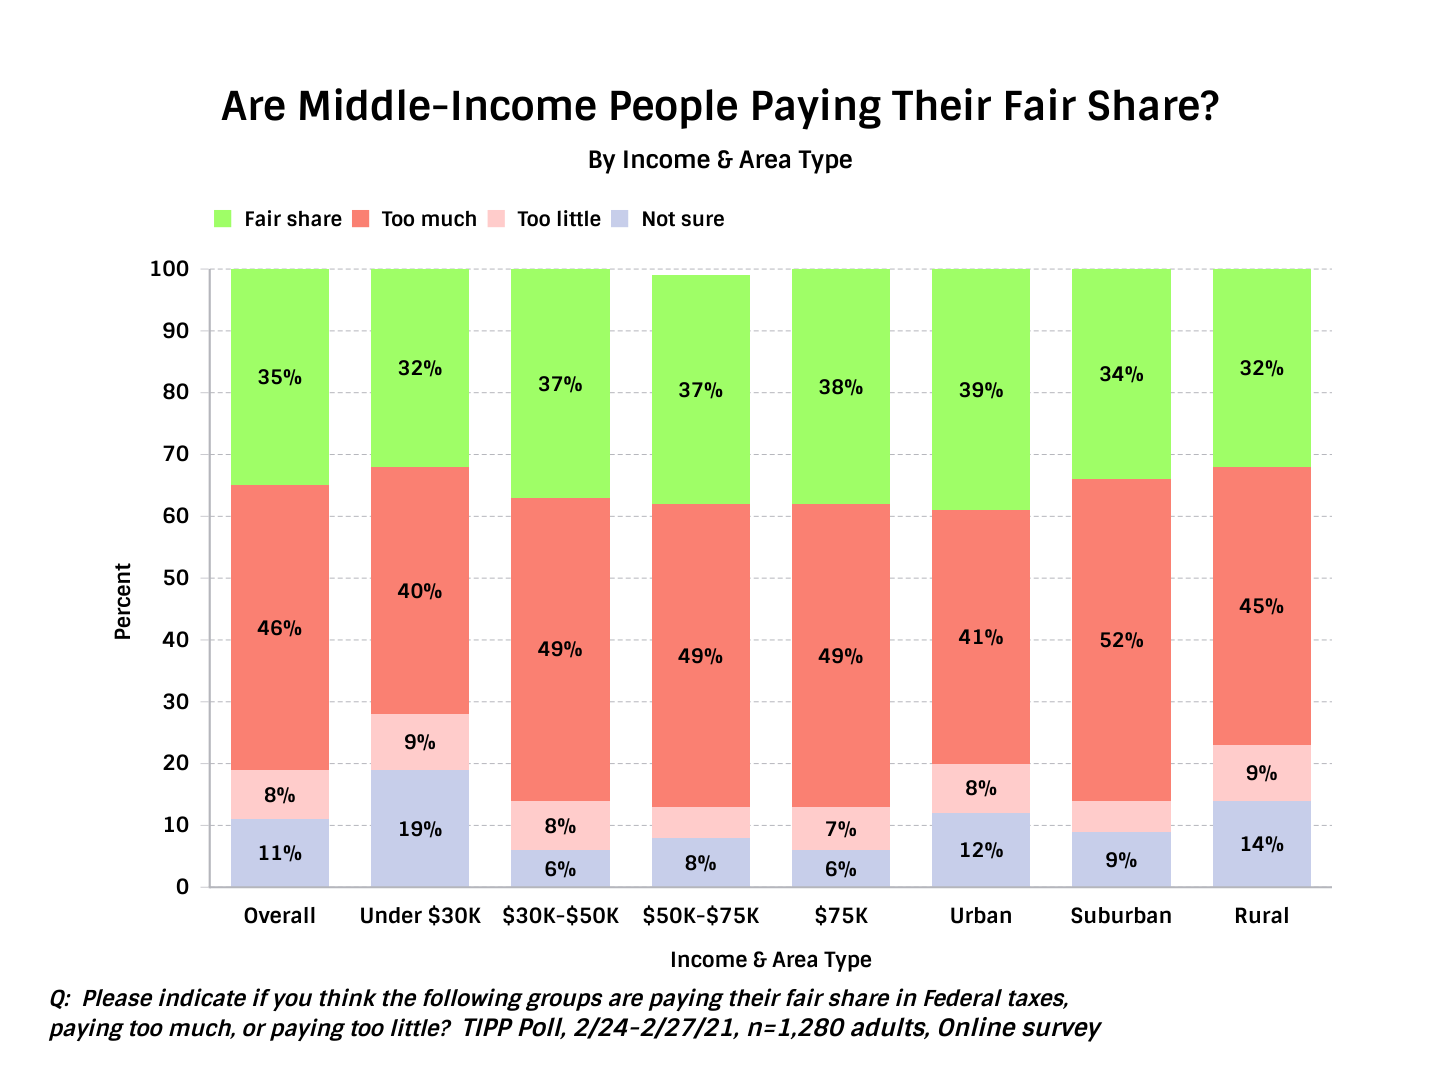 Are Middle-Income People Paying Their Fair Share - Chart